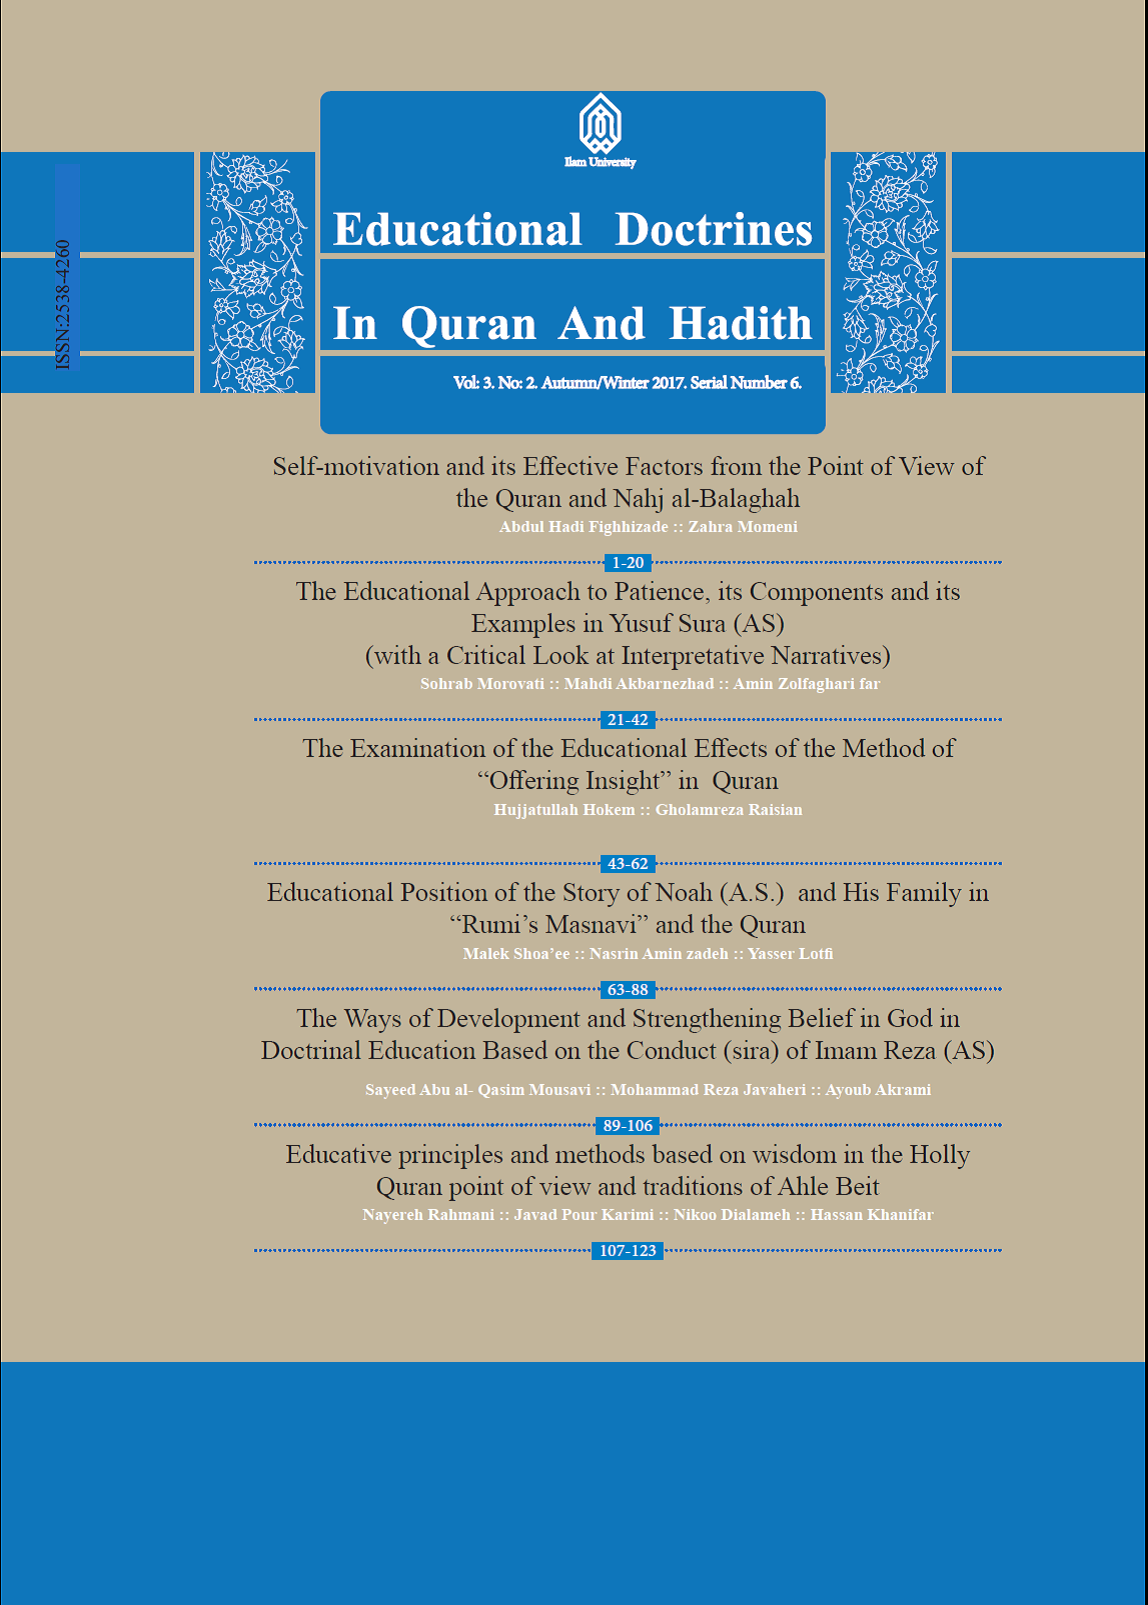 Educational Doctrines in Quran and Hadith